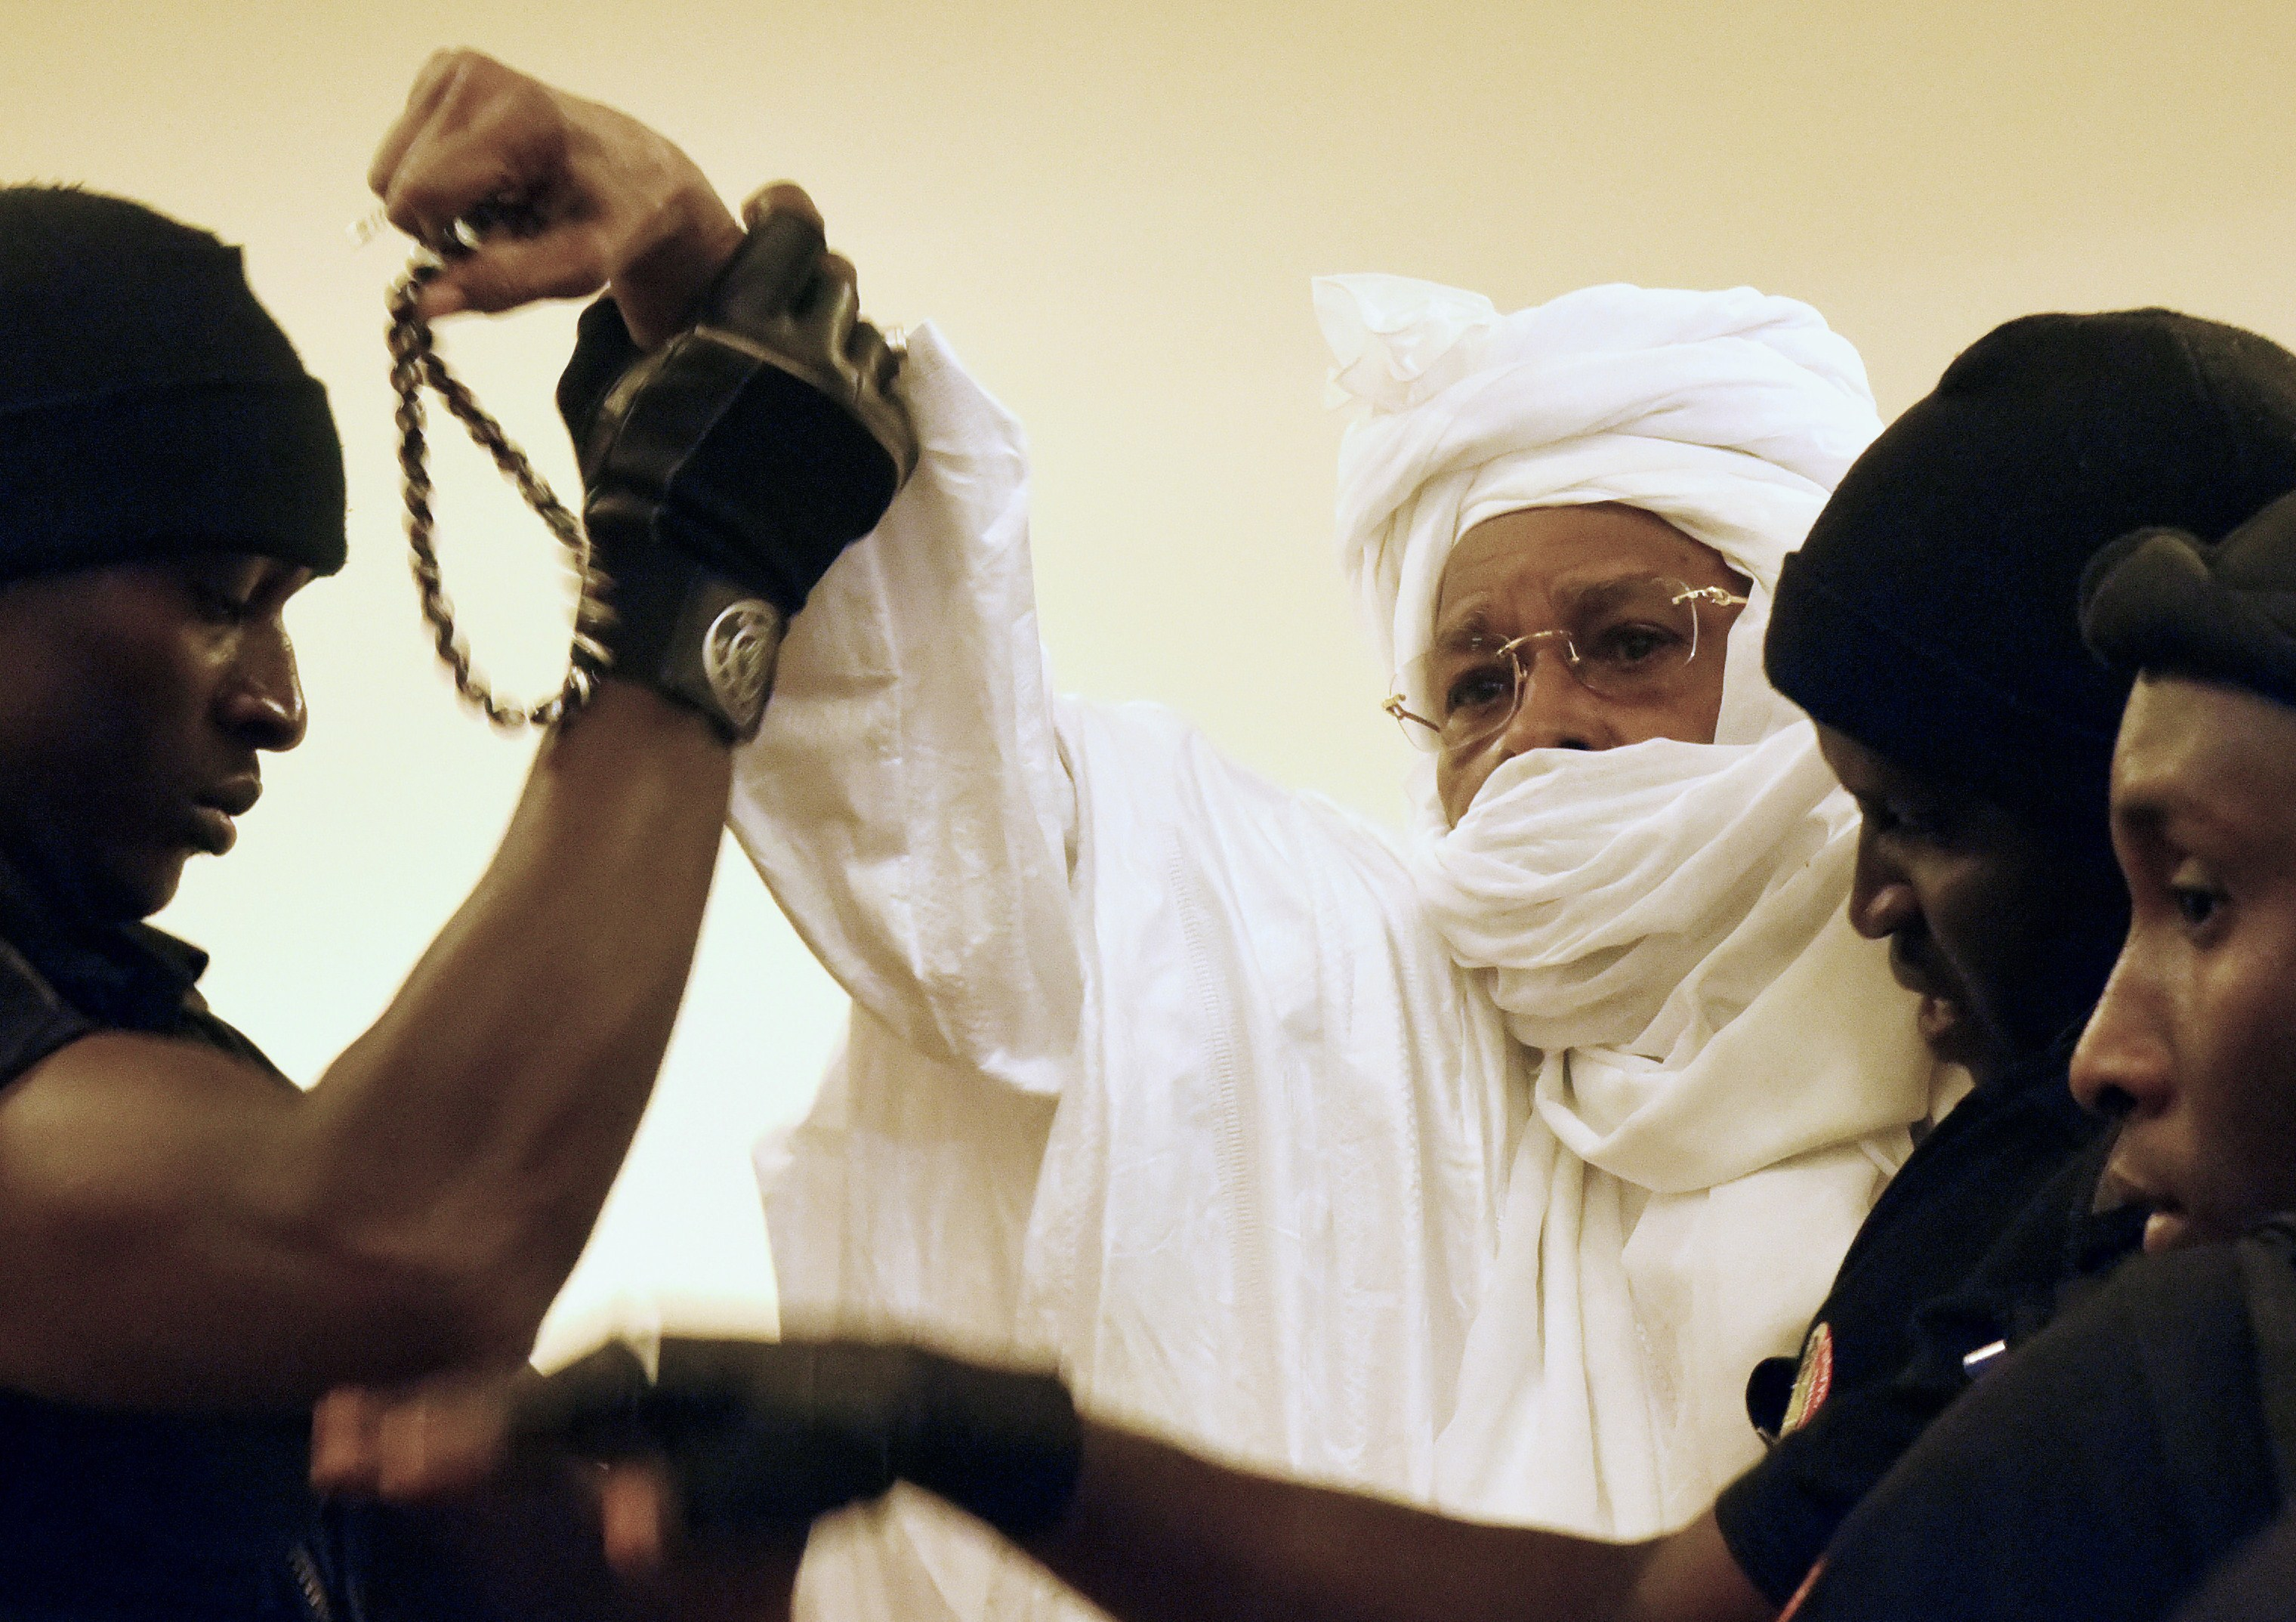 Former Chadian dictator Hissene Habre is escorted by prison guards into the courtroom for the first proceedings of his trial by the Extraordinary African Chambers in Dakar on July 20, 2015. (SEYLLOU/AFP/Getty Images)